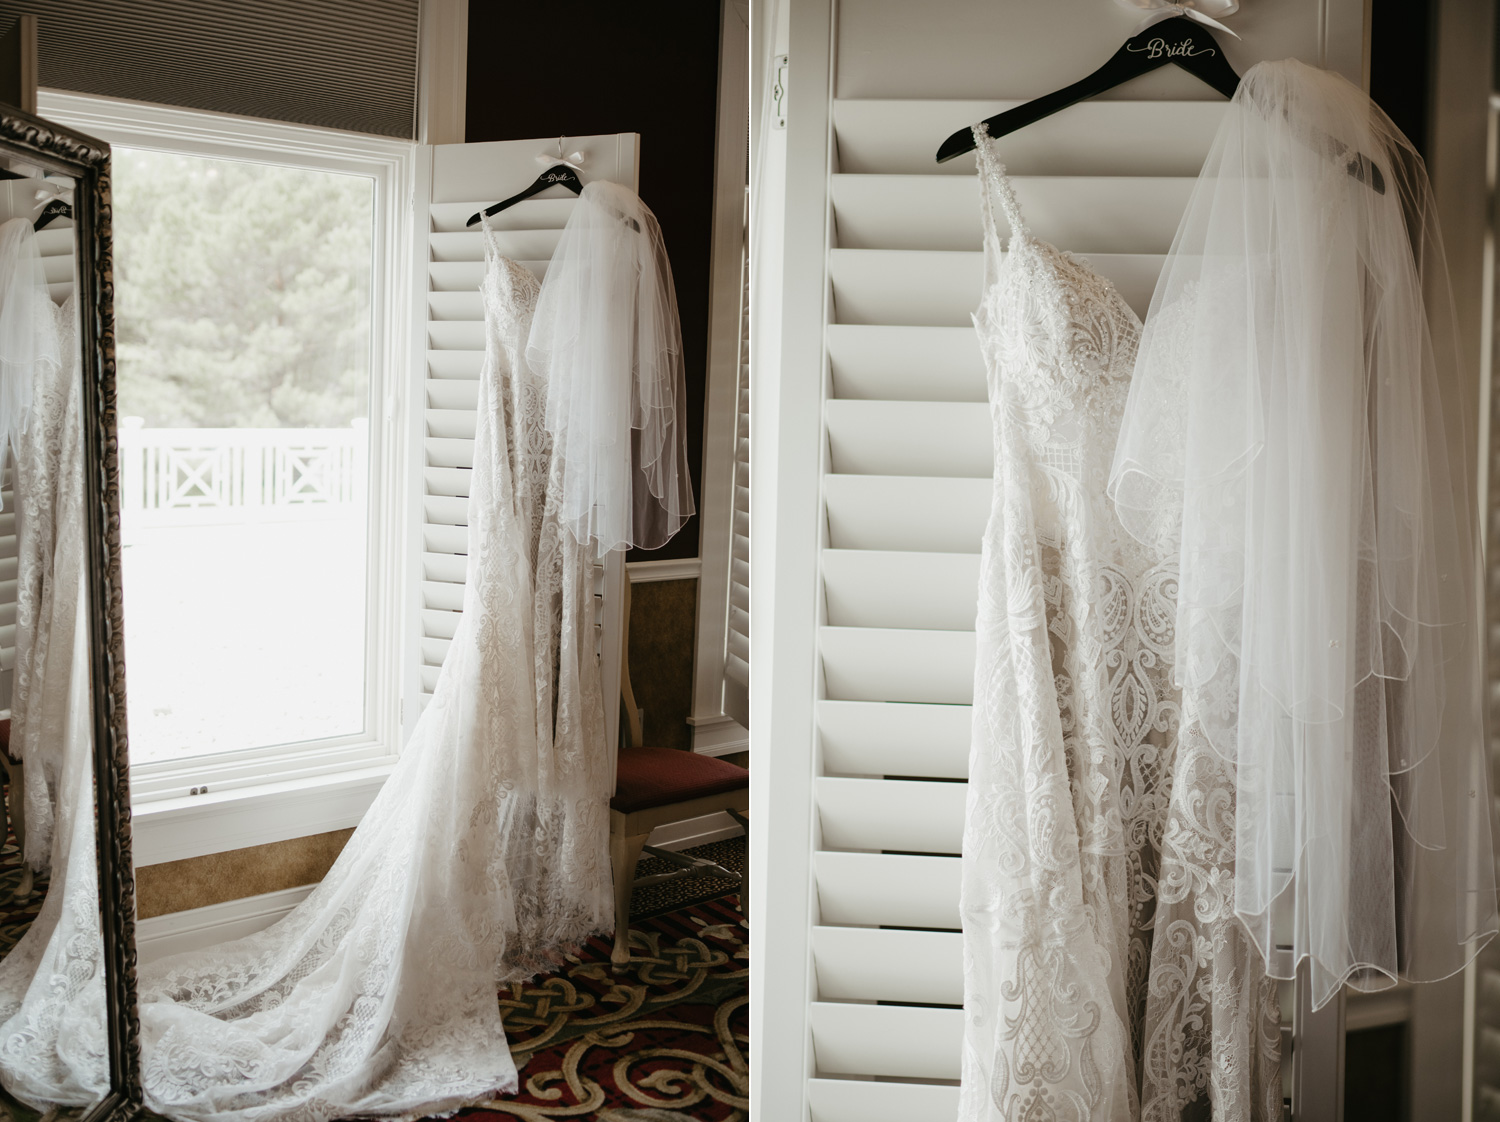 Wedding dress hanging up on window shutters